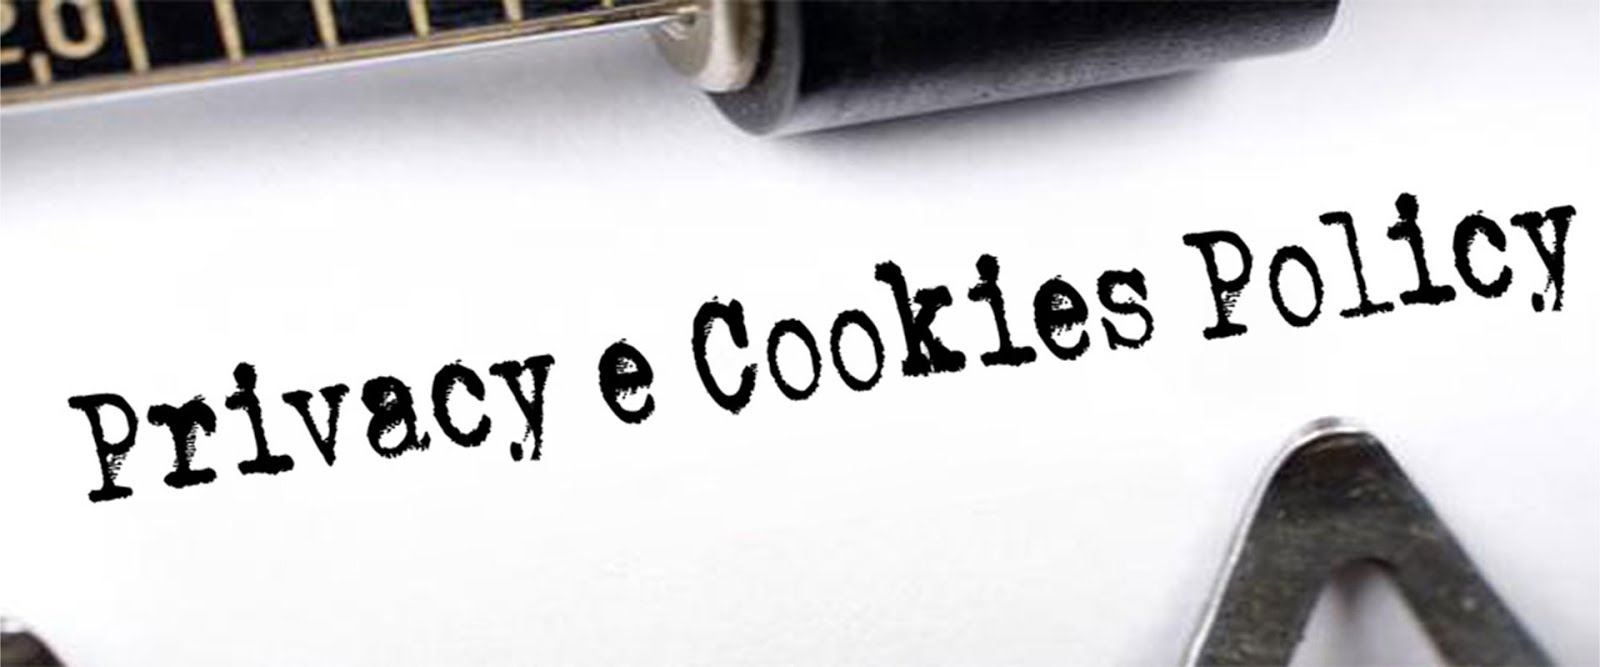 privacy cookies and policy